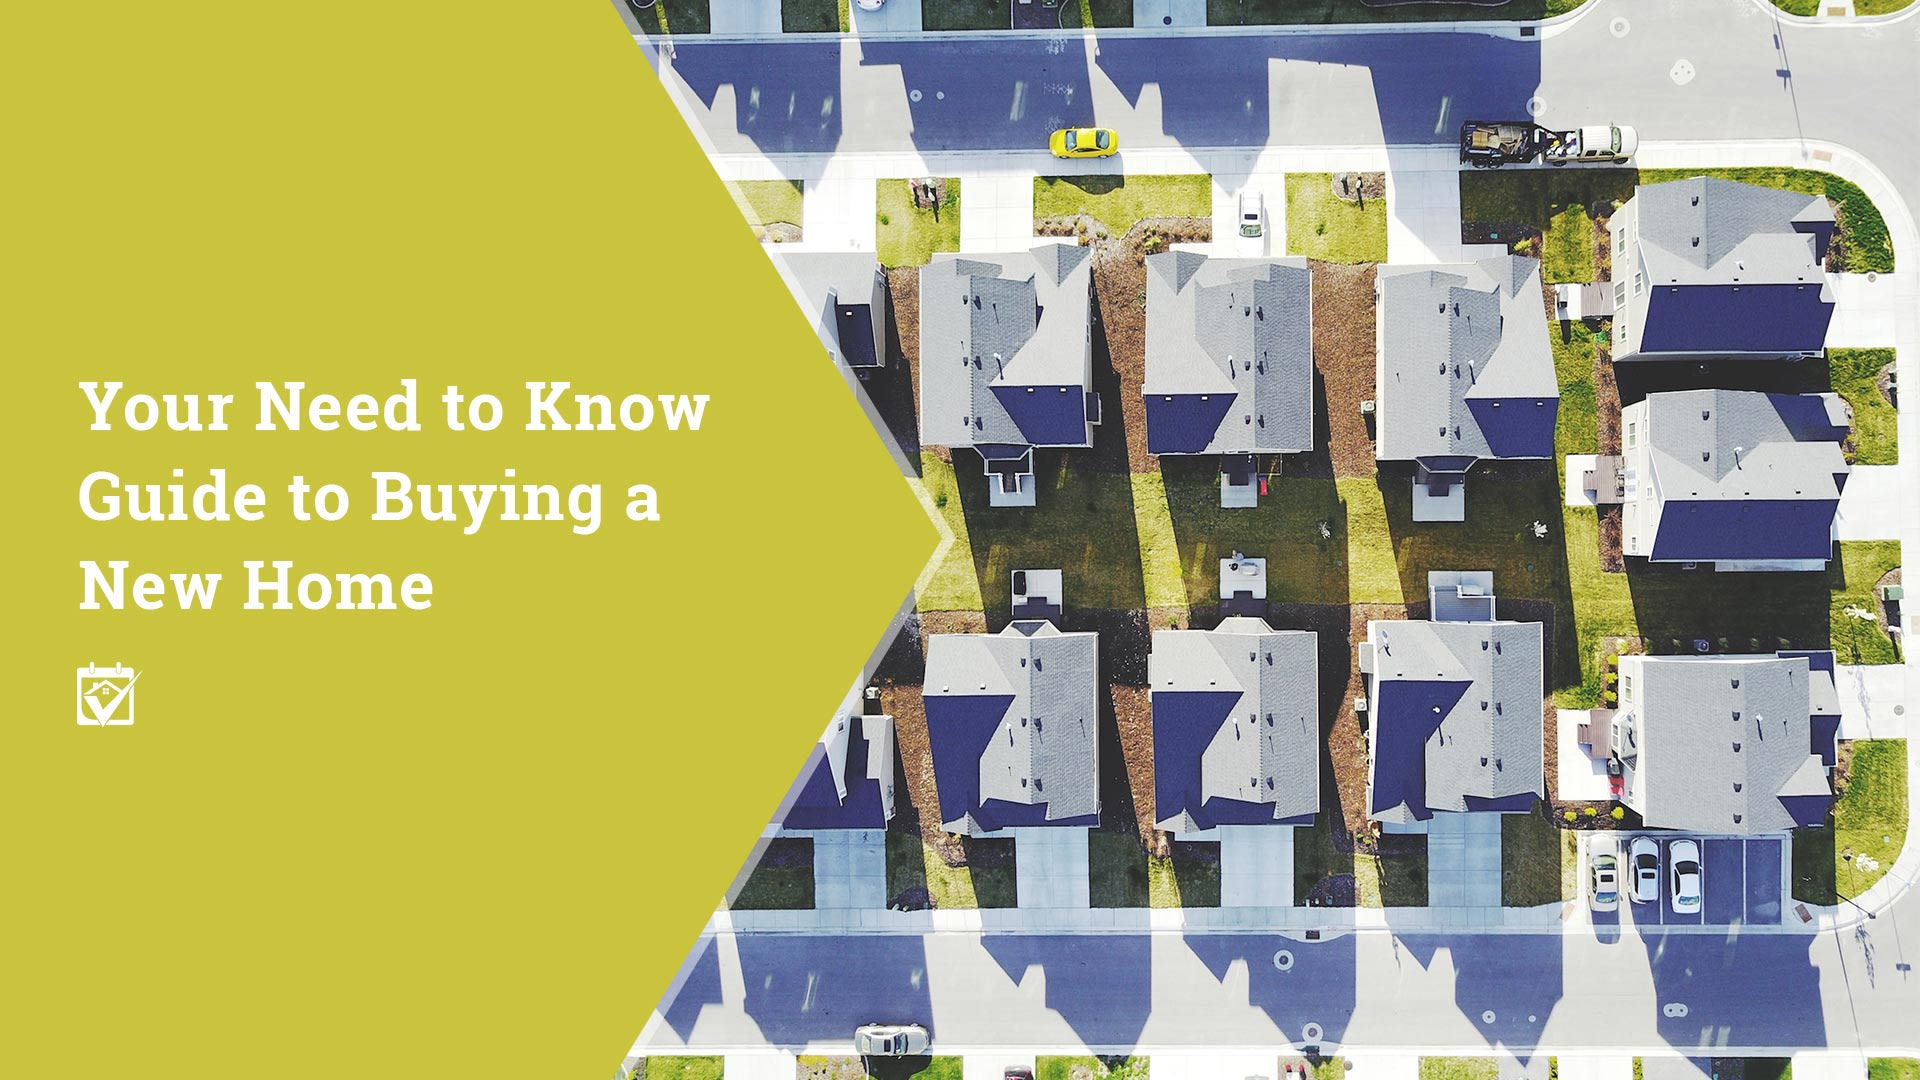 Your Need to Know Guide to Buying a New Home